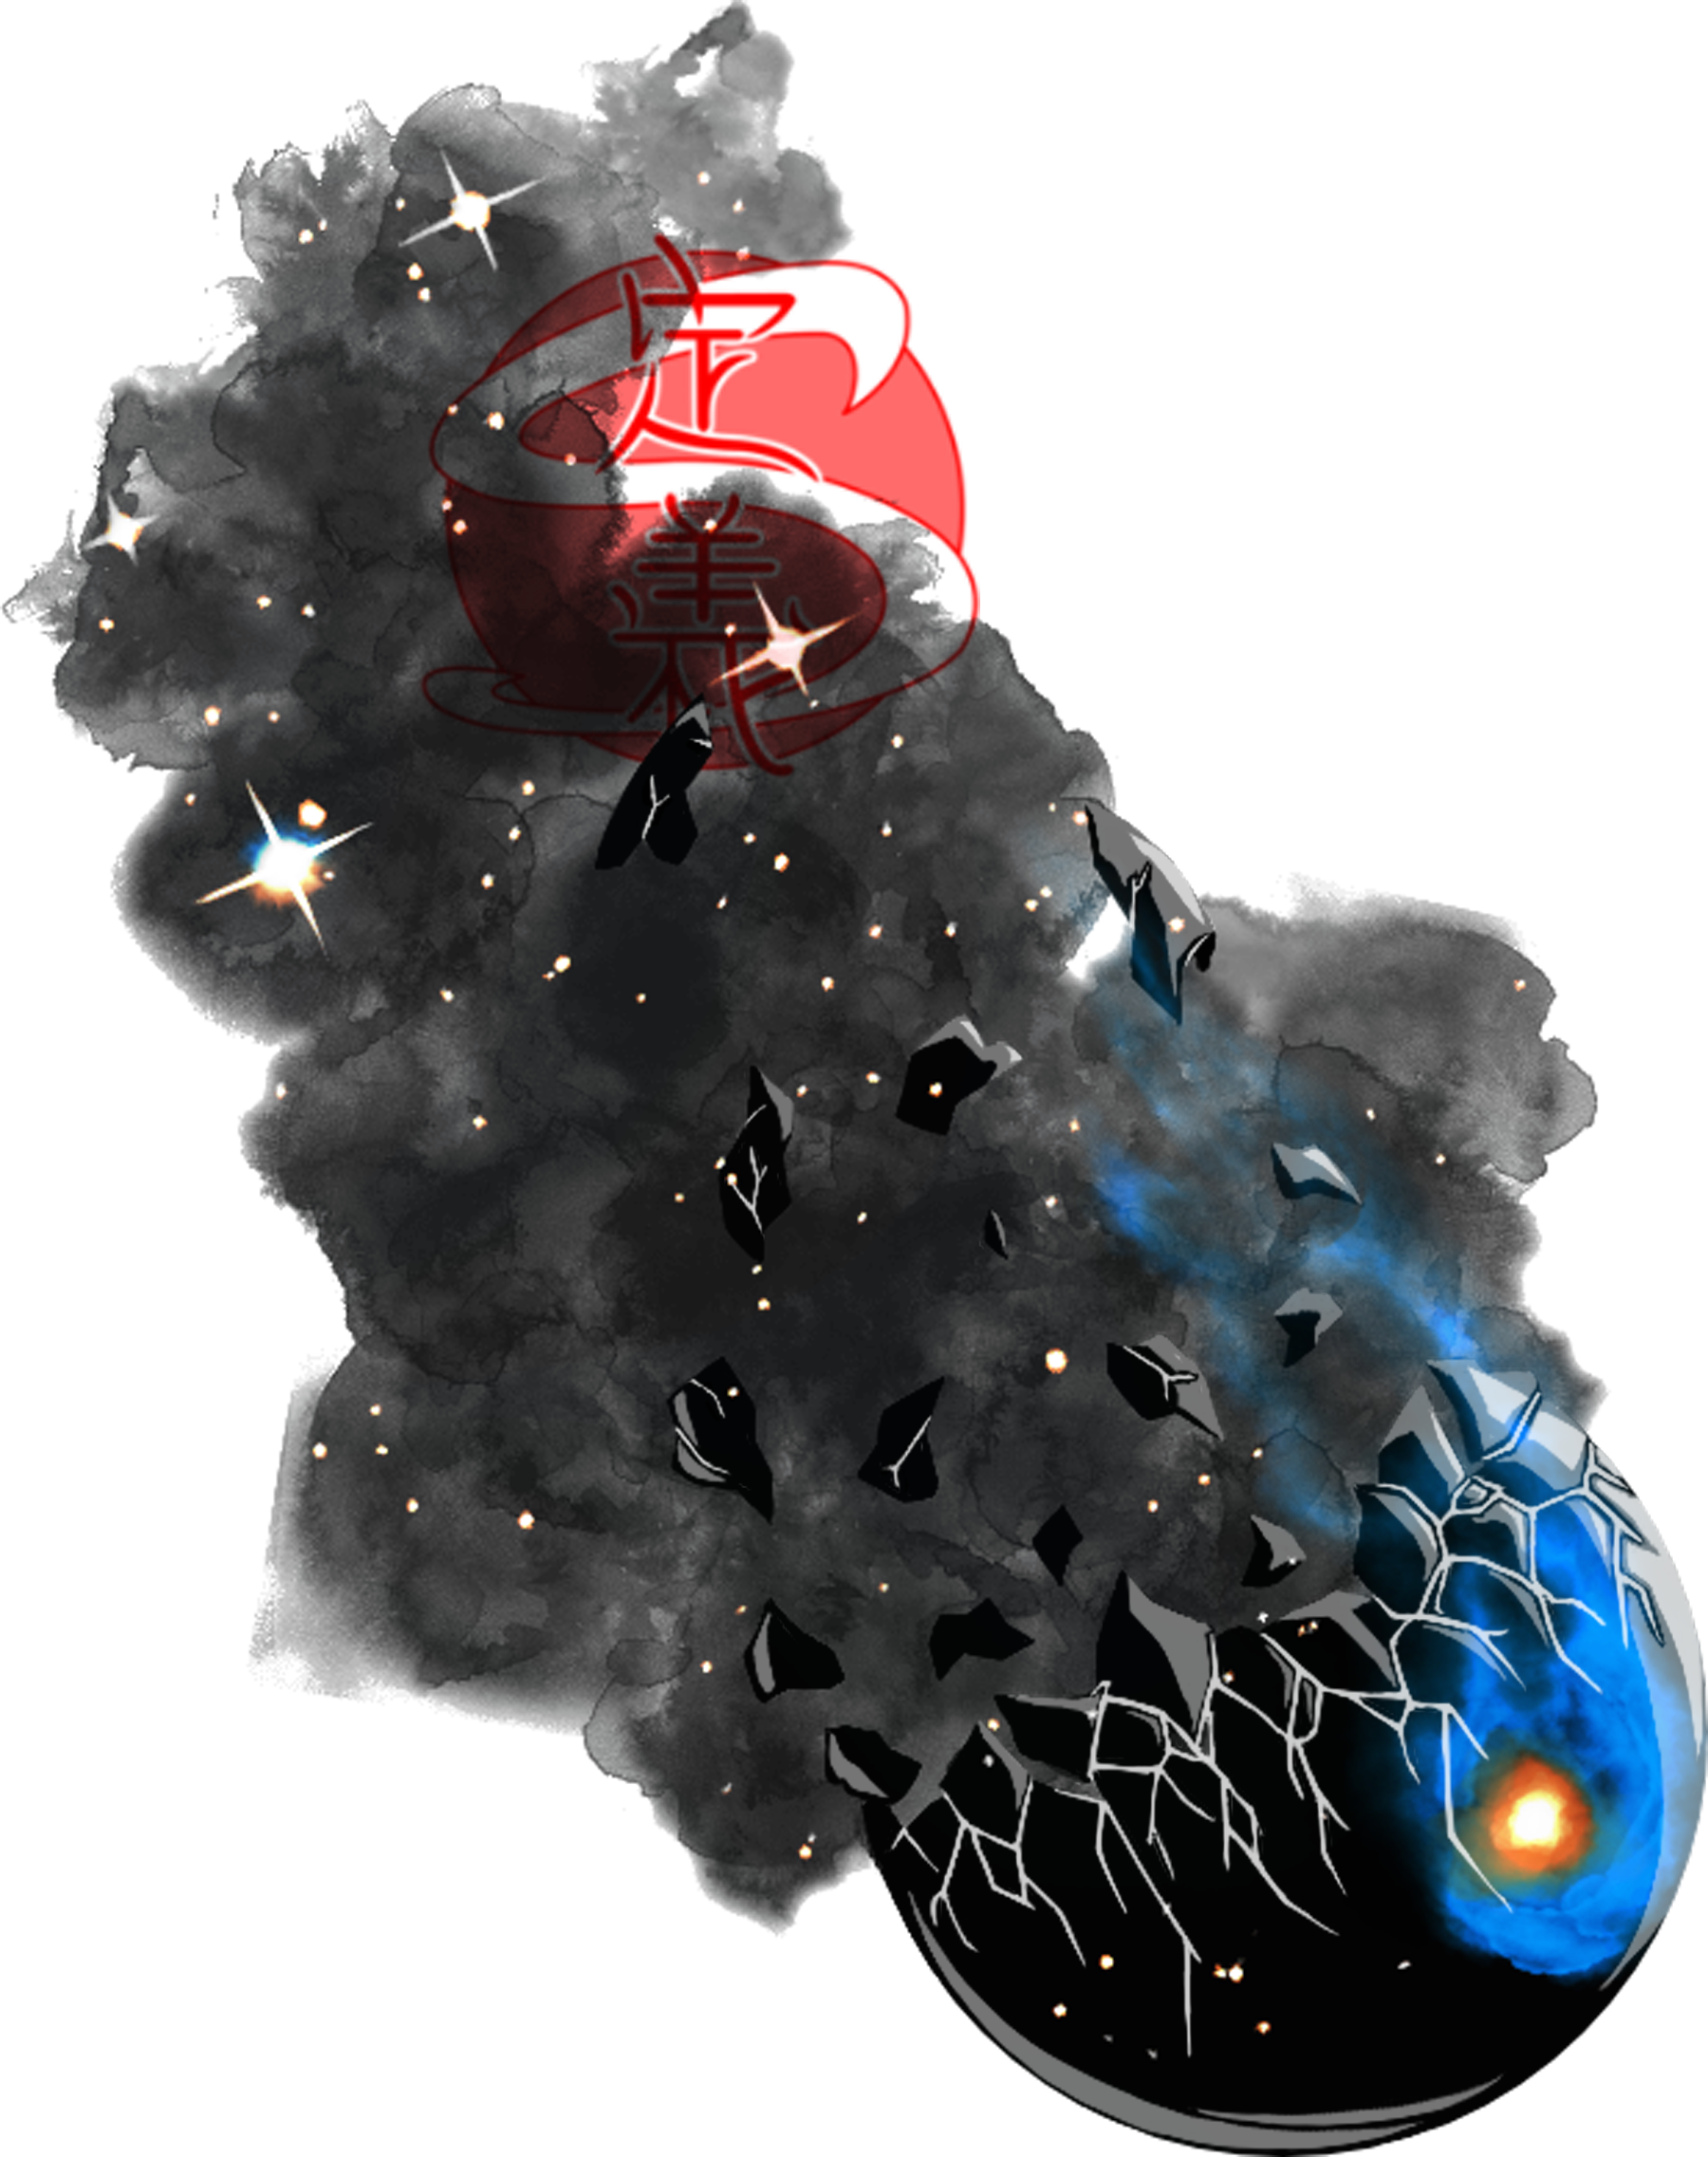 space-ball v3.png